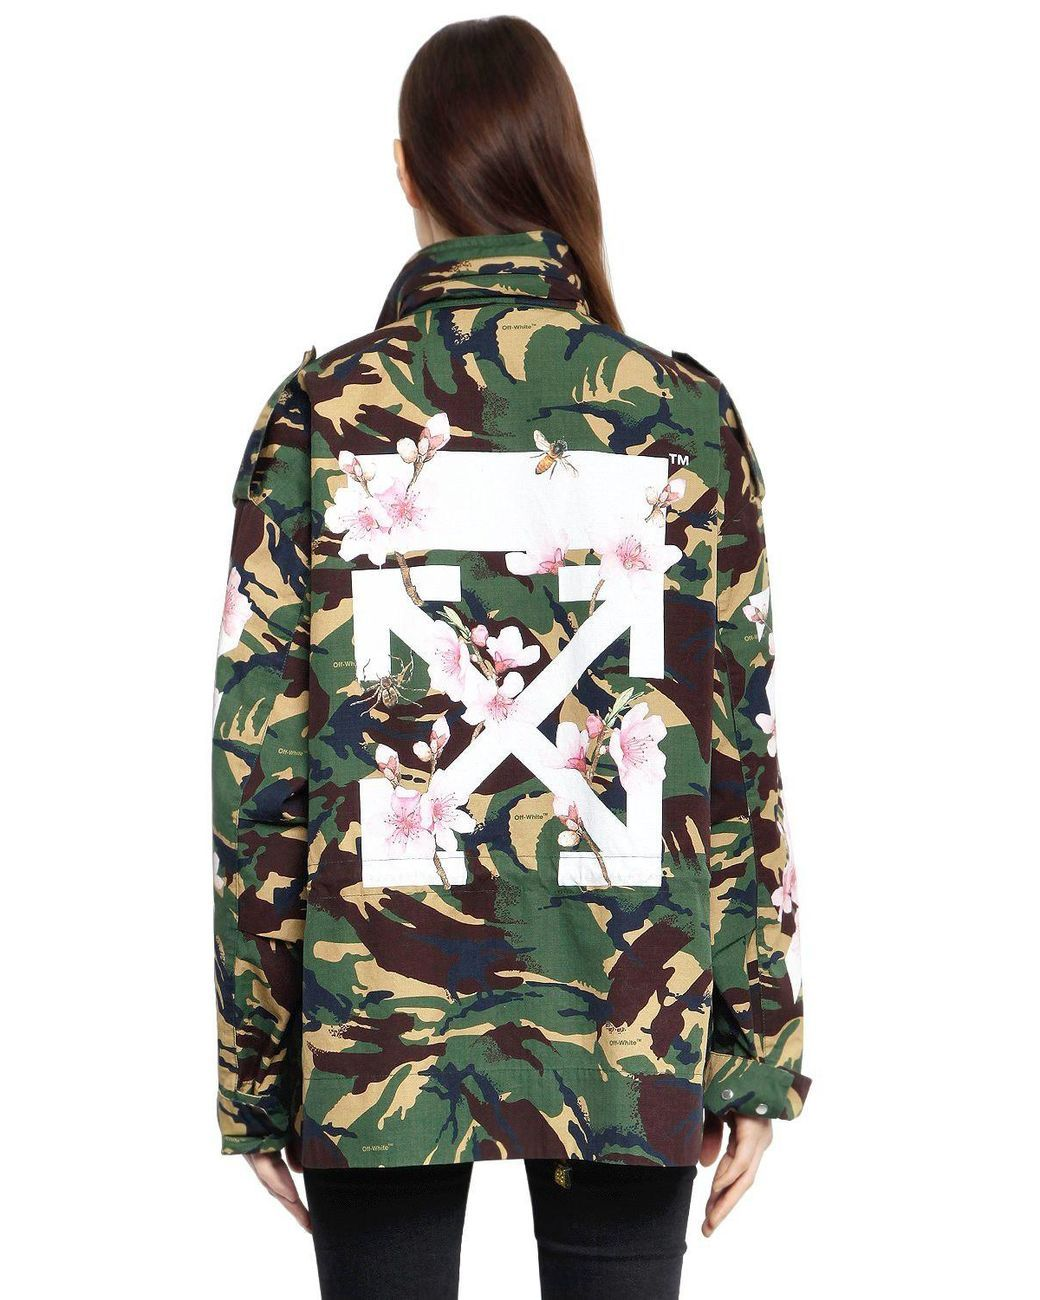 42f8d6e13a8f3 Off-White c/o Virgil Abloh | Green M65 Camo & Cherry Blossom Field Jacket |  Lyst